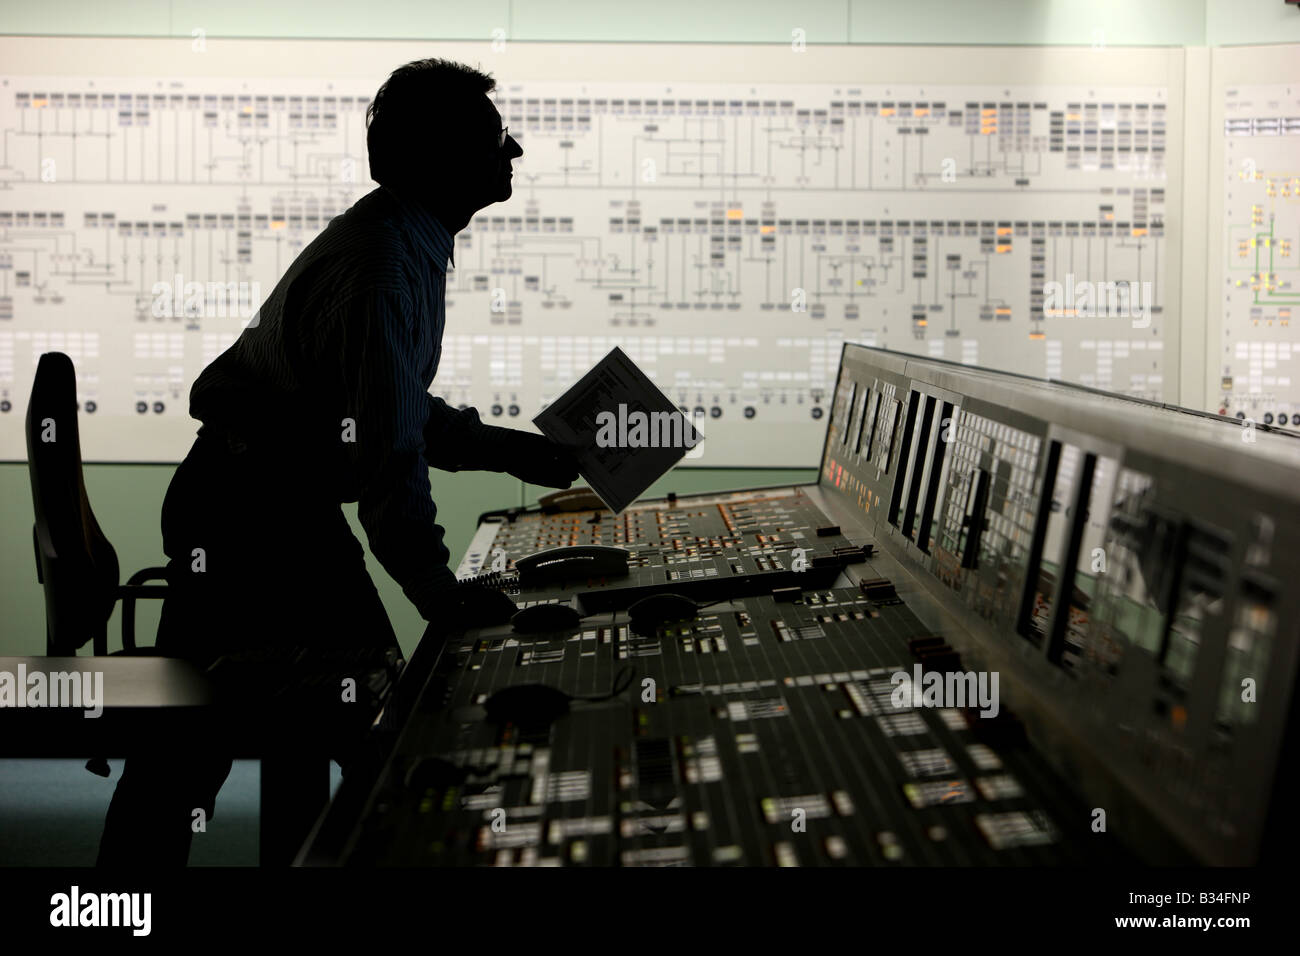 Simulator center for nuclear power stations, training facility for power station staff. Essen, Germany - Stock Image